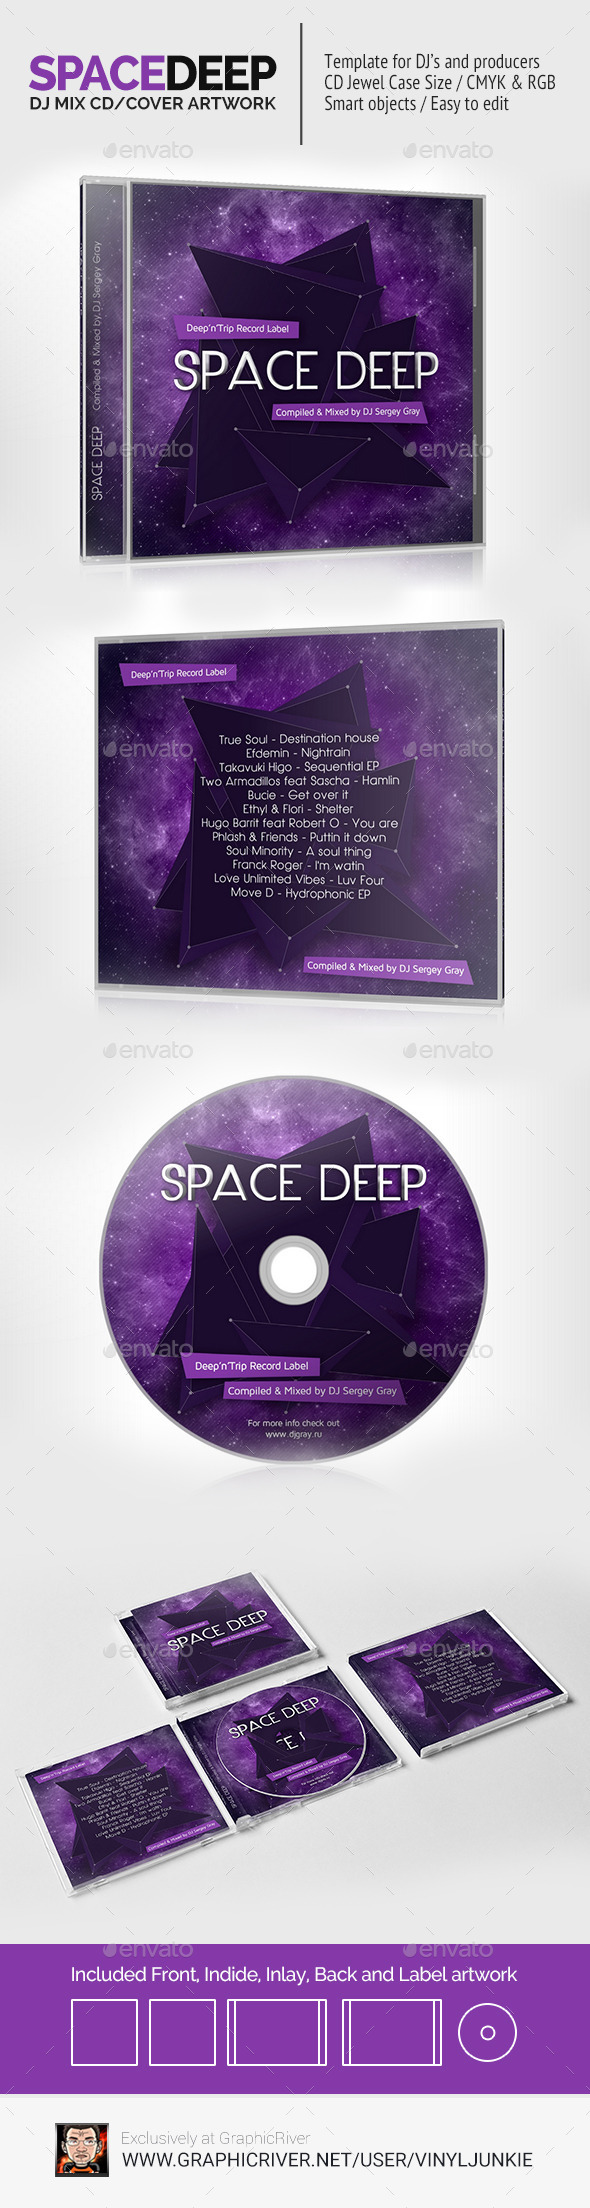 DJ Mix CD Cover Artwork Template